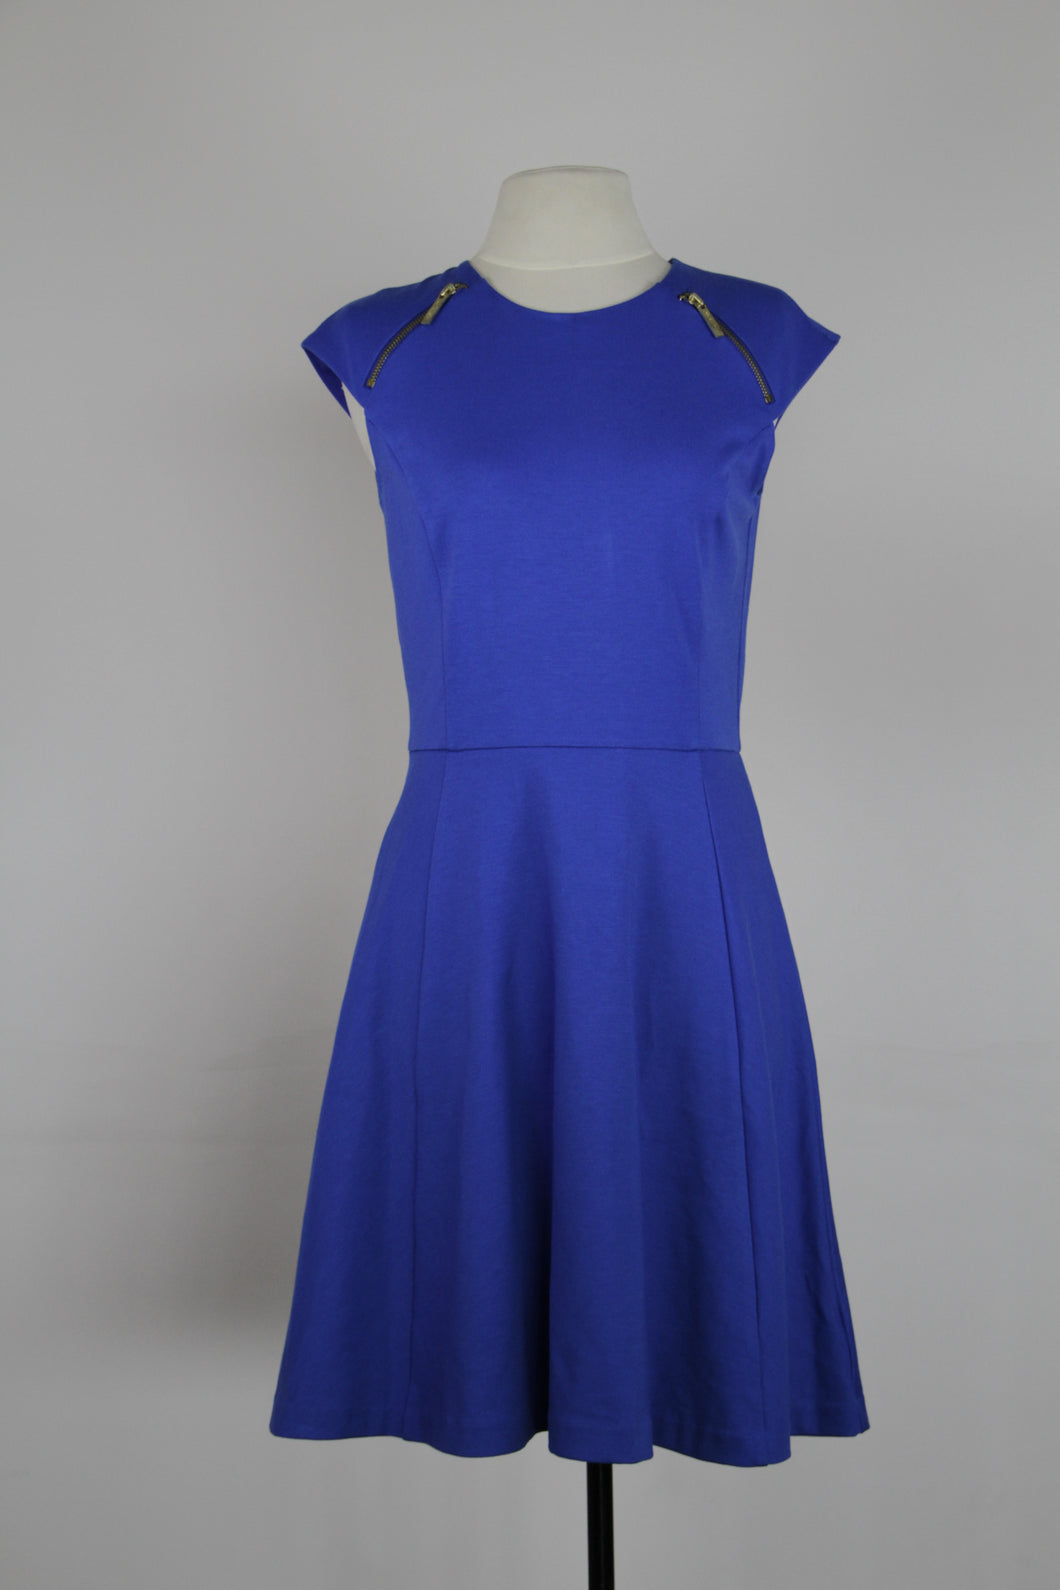 Michael Kors Royal Blue Cap Sleeve A Line With Gold Shoulder Zipper Dress